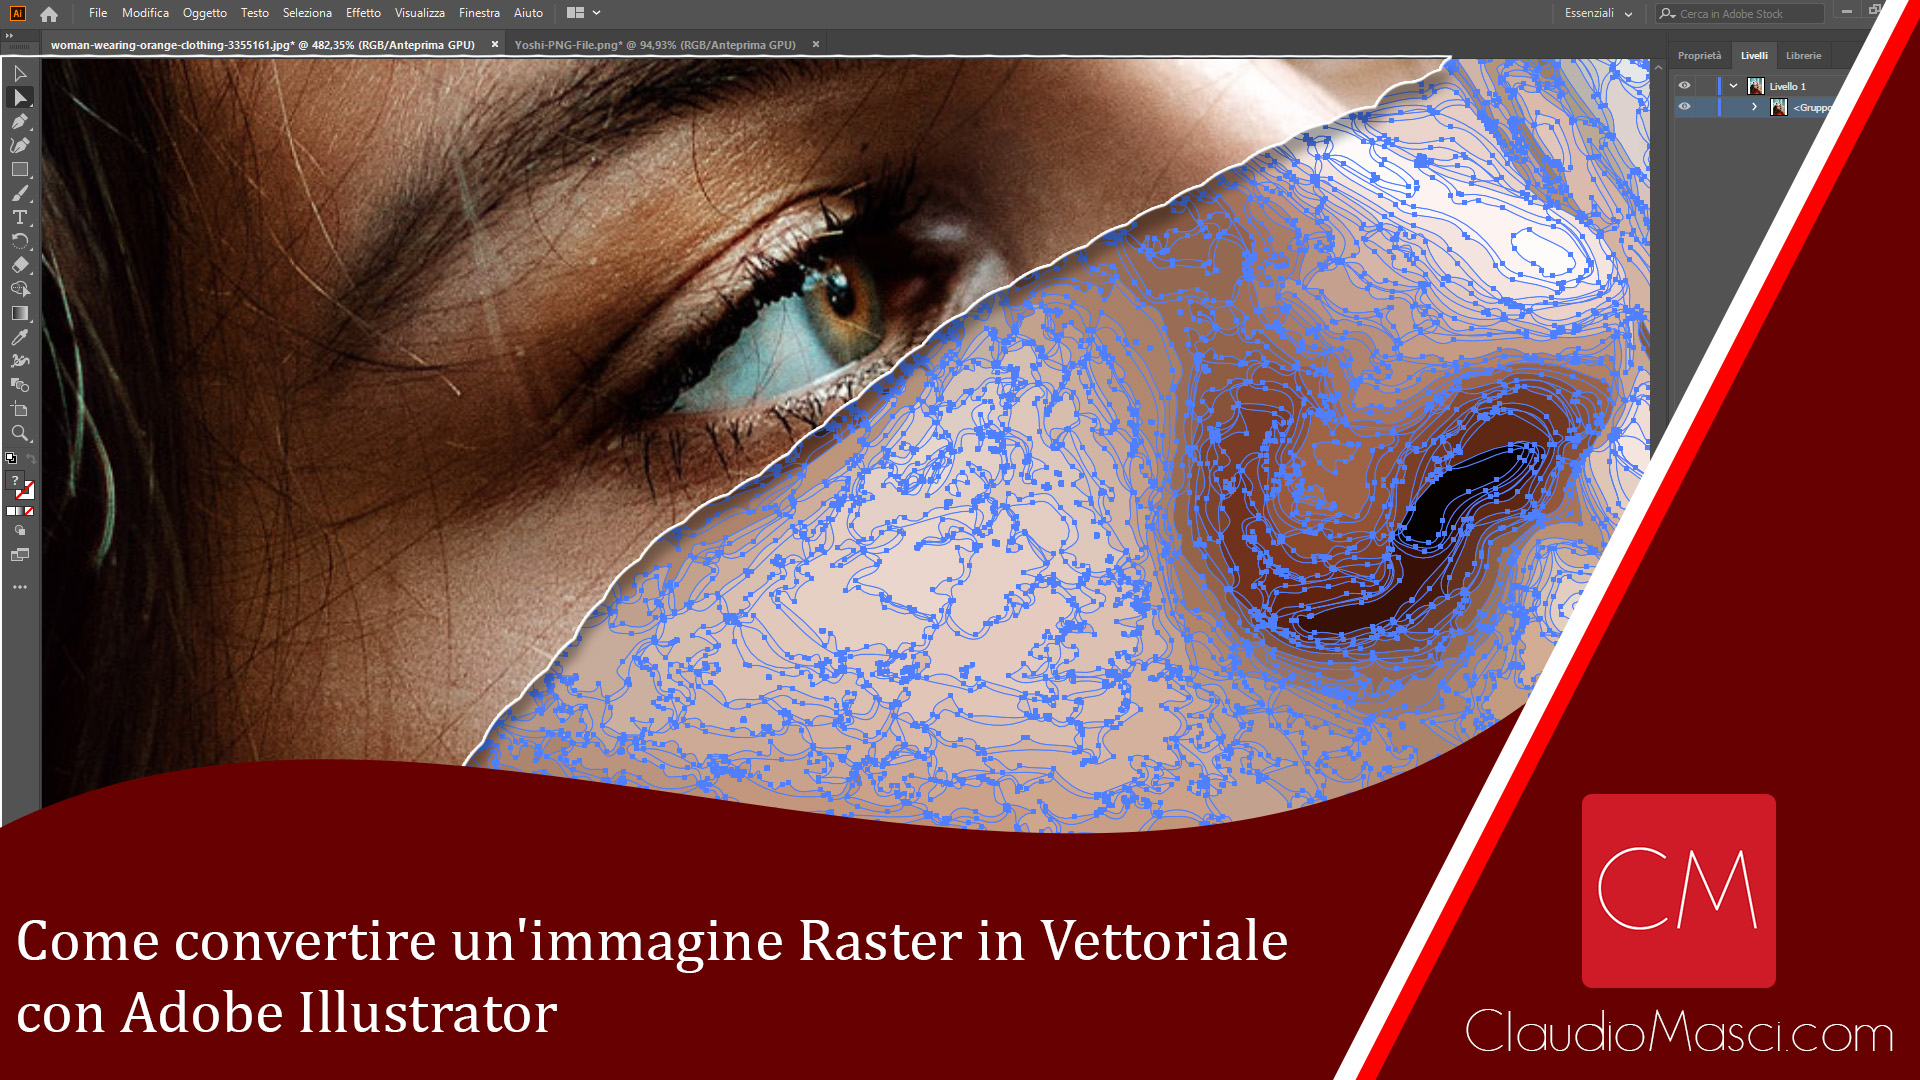 Come convertire un'immagine Raster in Vettoriale con Illustrator